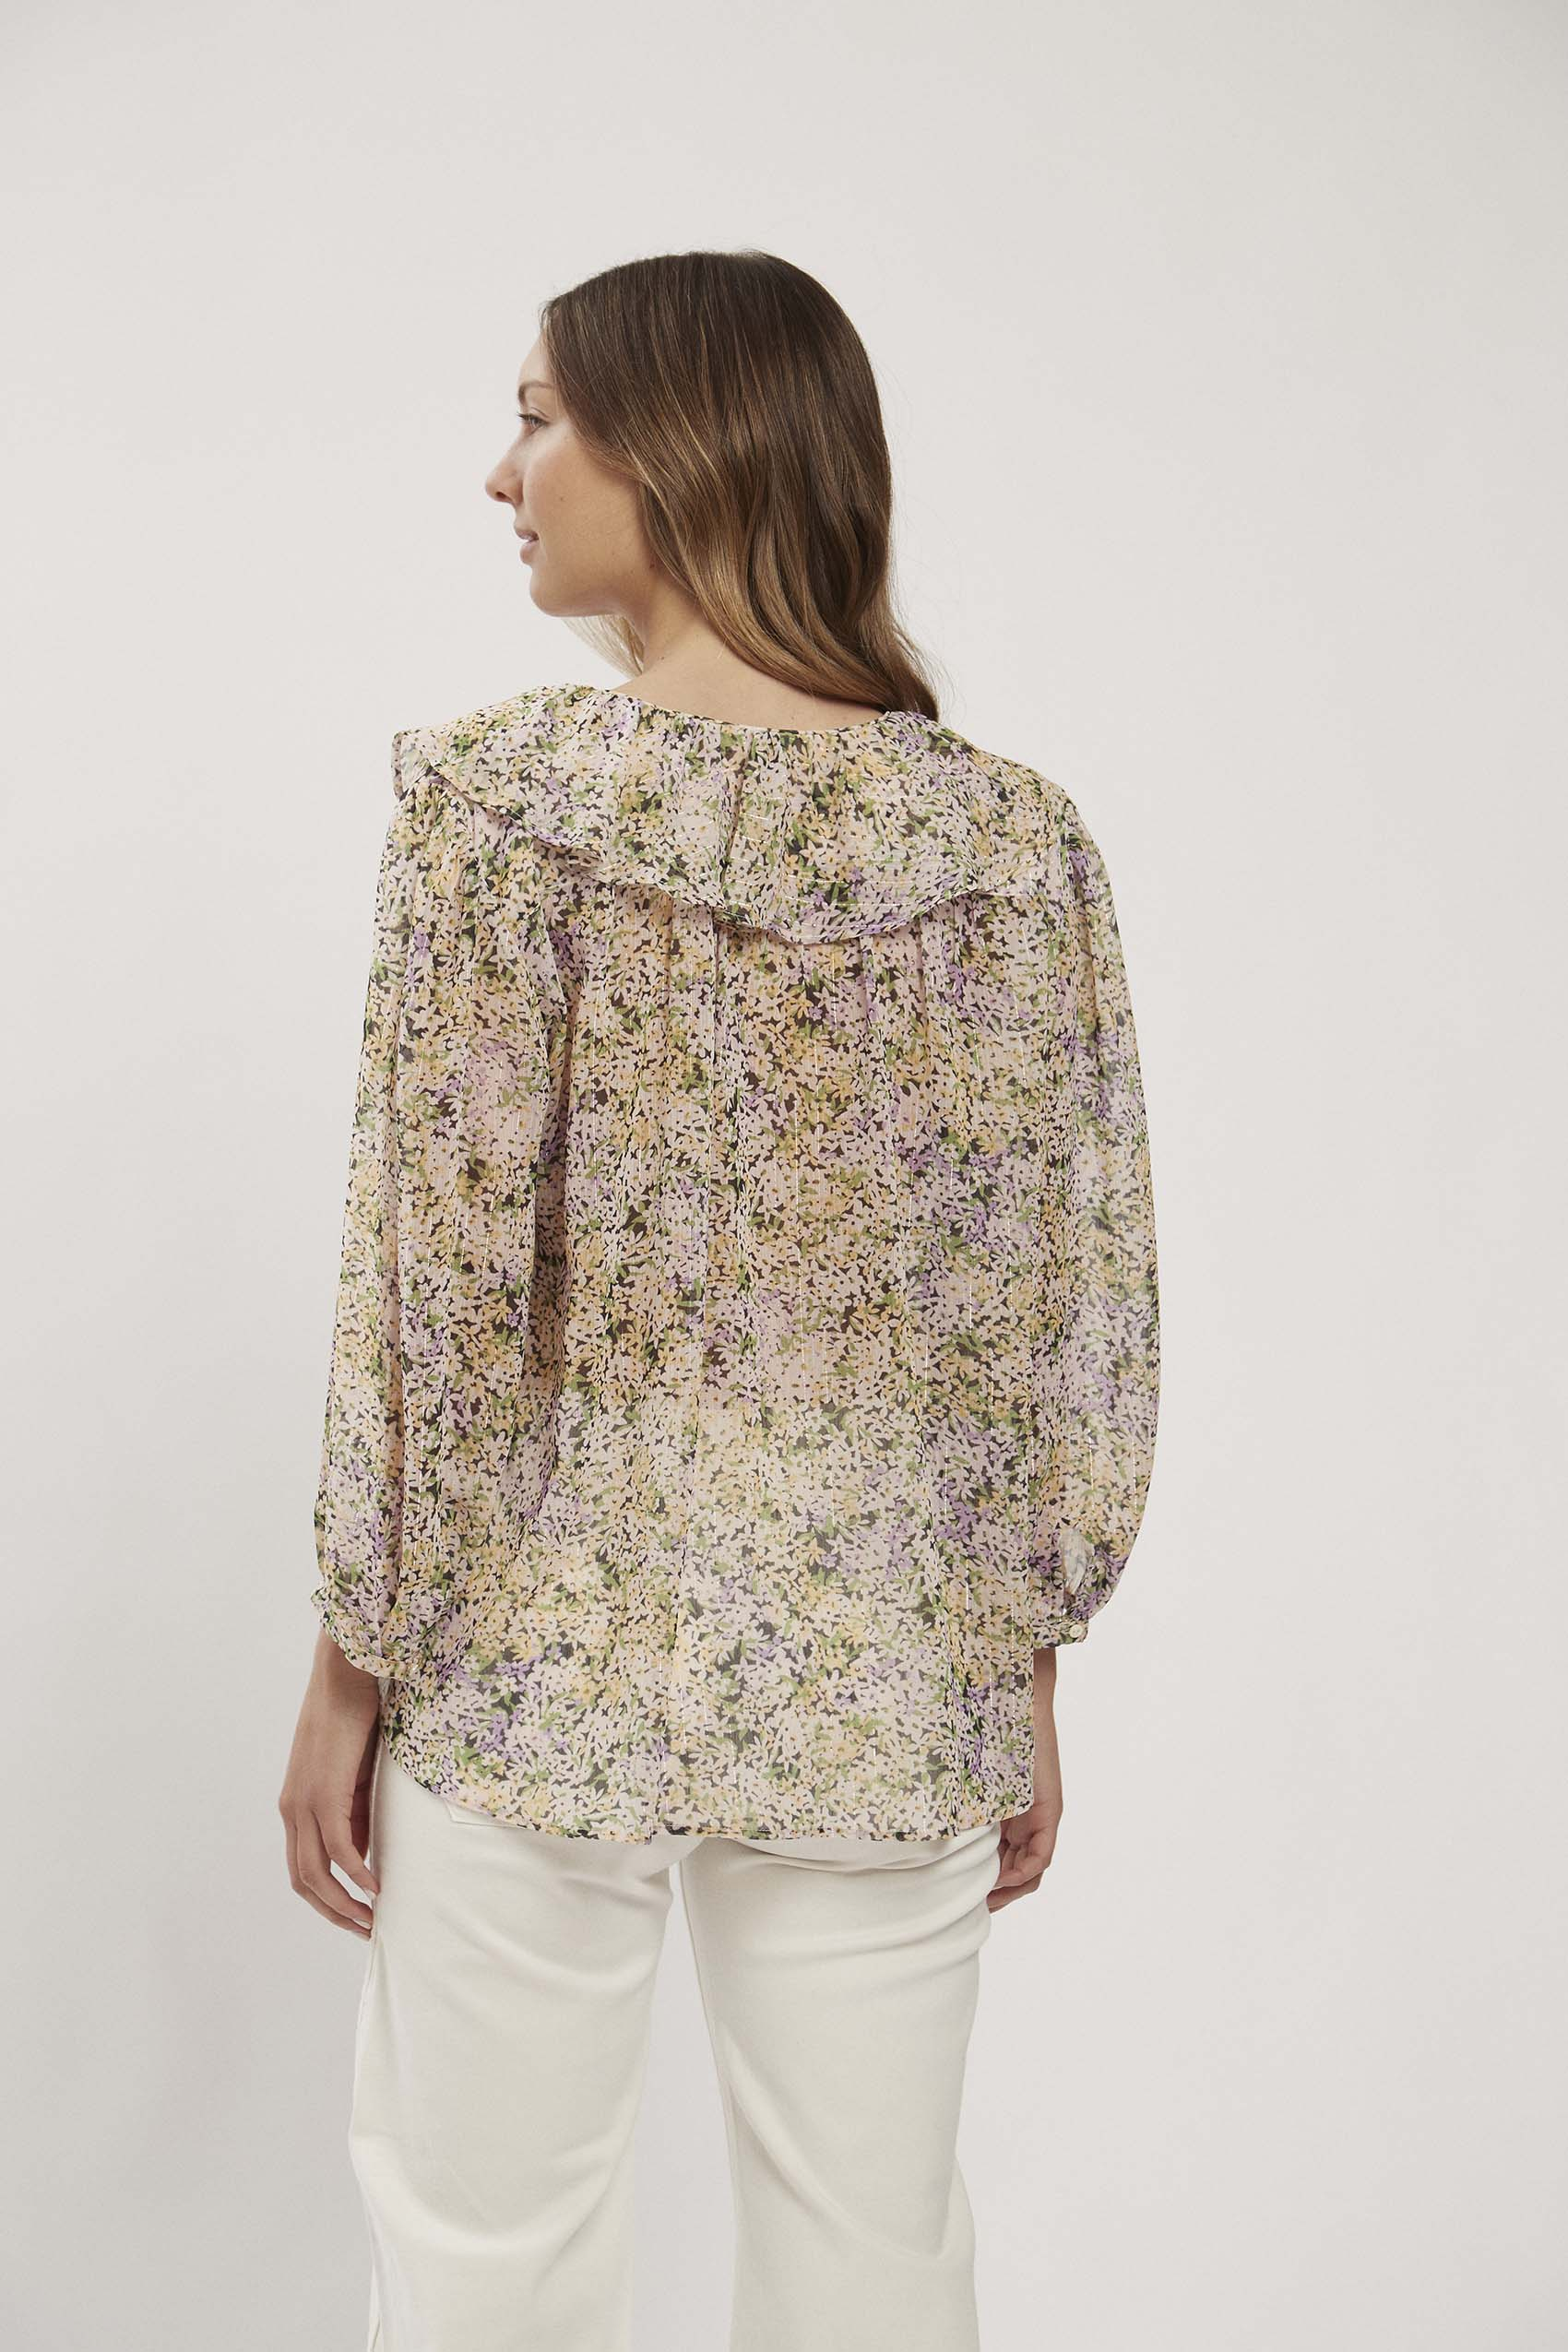 awada_blusa-cristy_00-09-2021__picture-17735